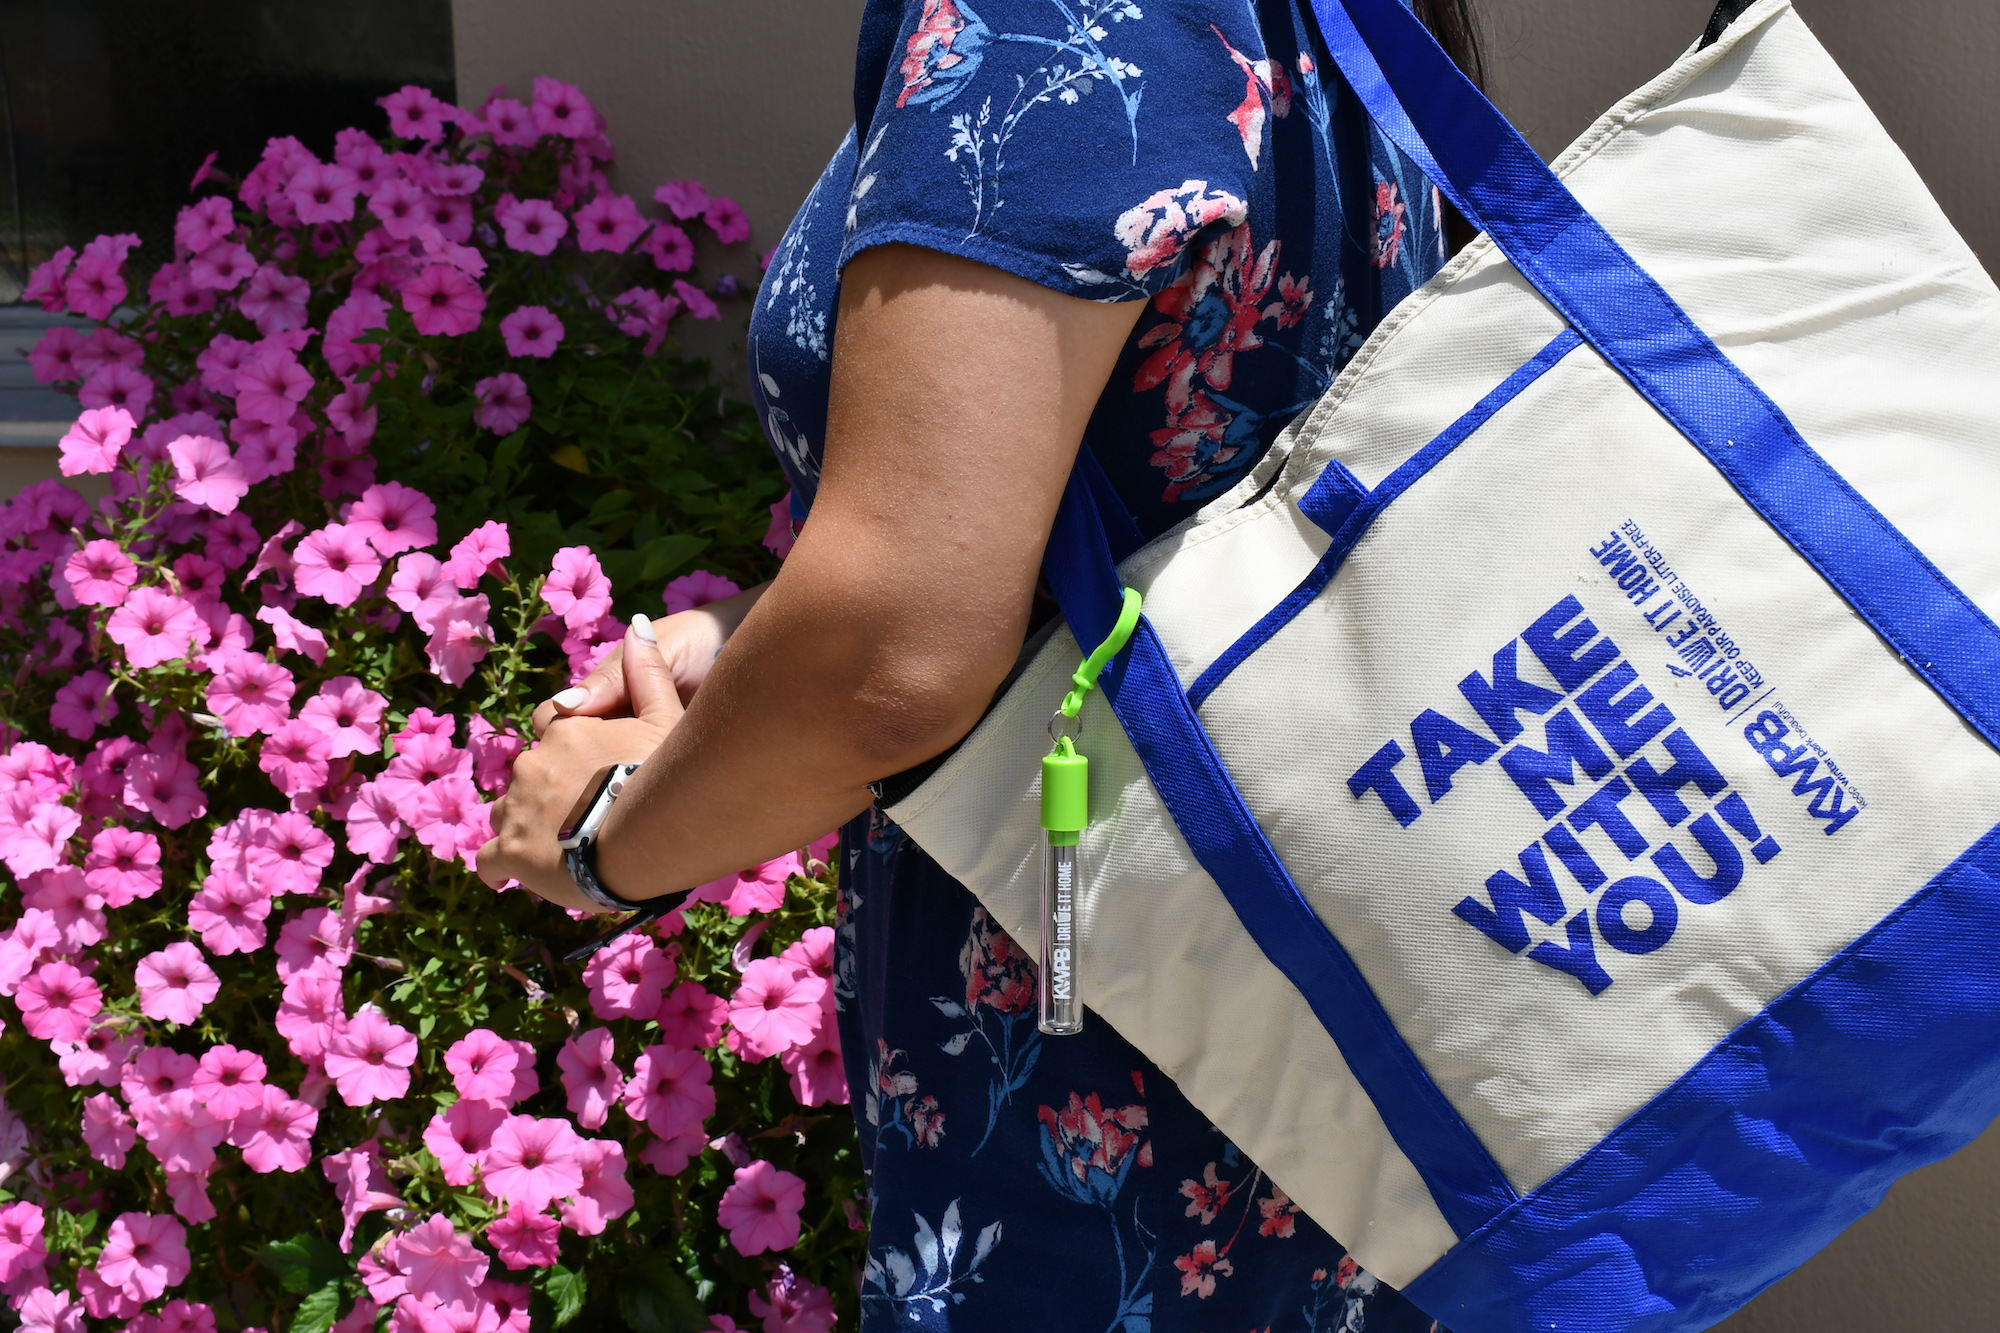 Woman holds large tote bag in front of a bush of flowers.